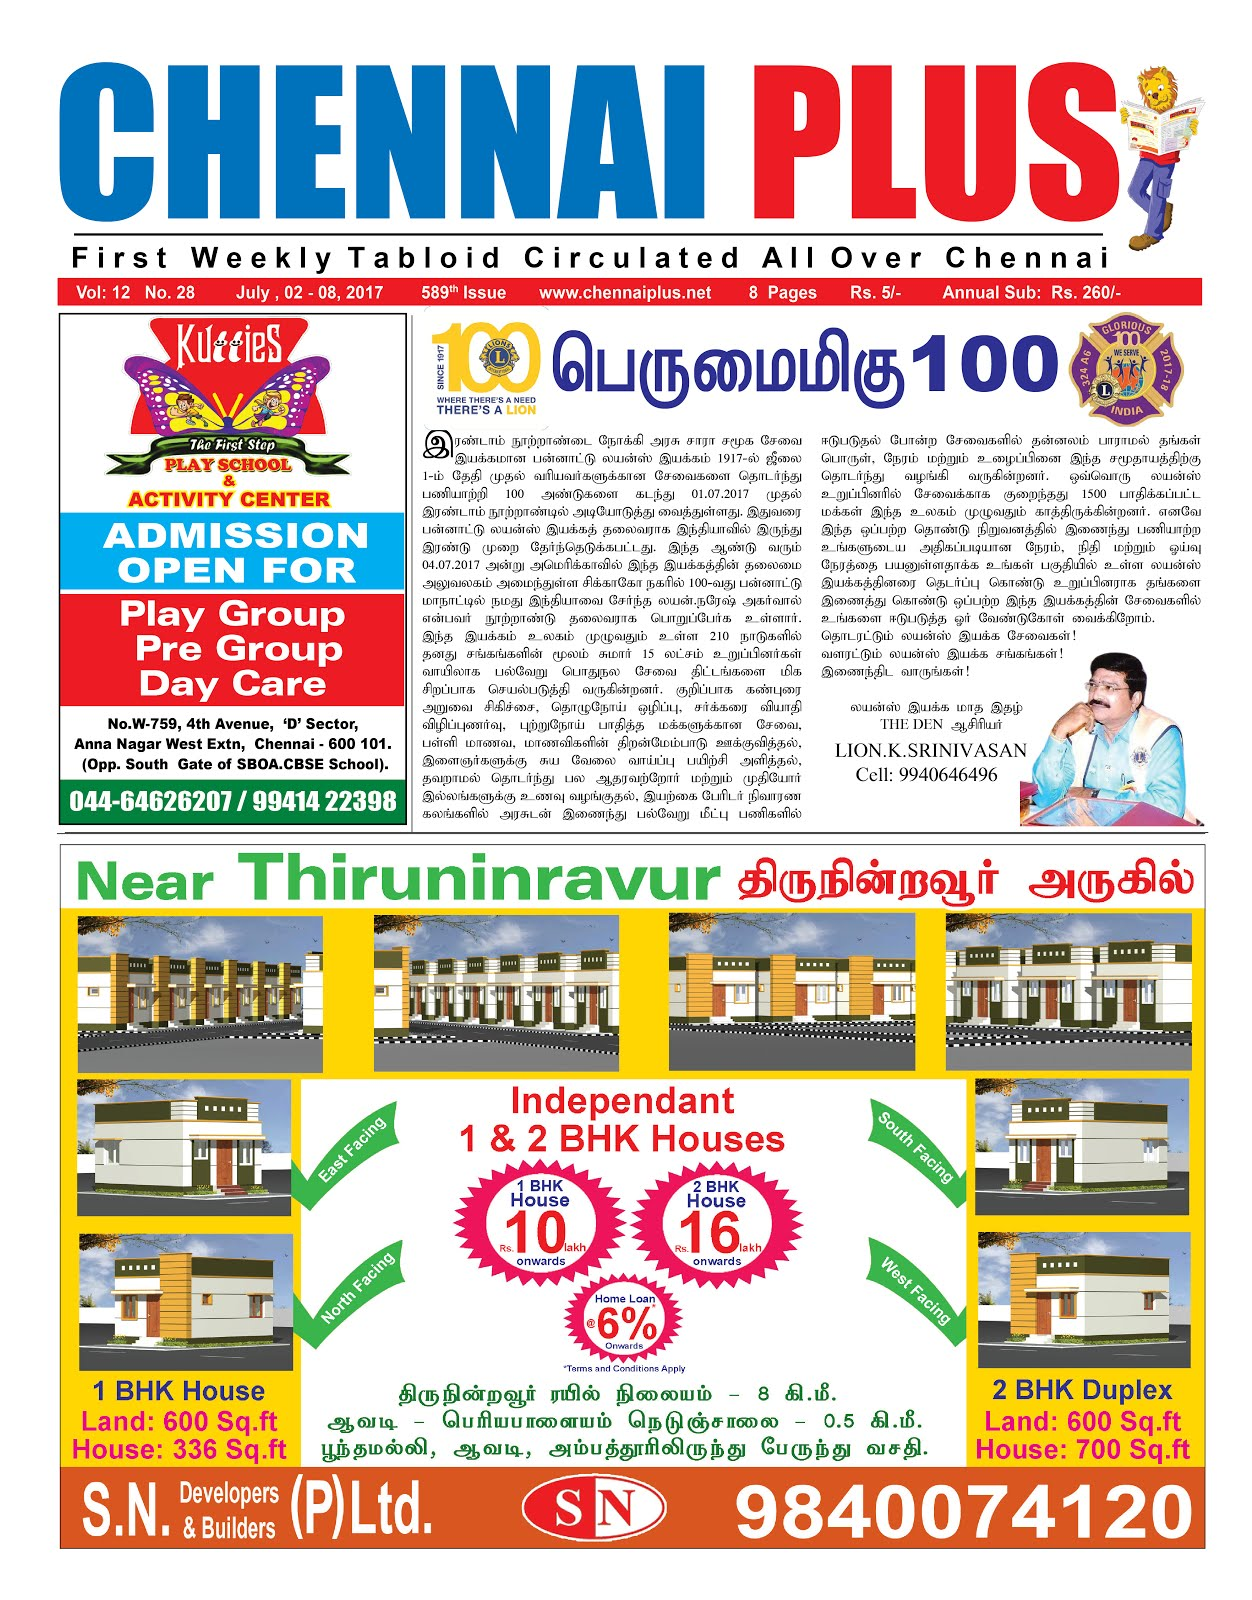 Chennai Plus_02.07.2017_Issue